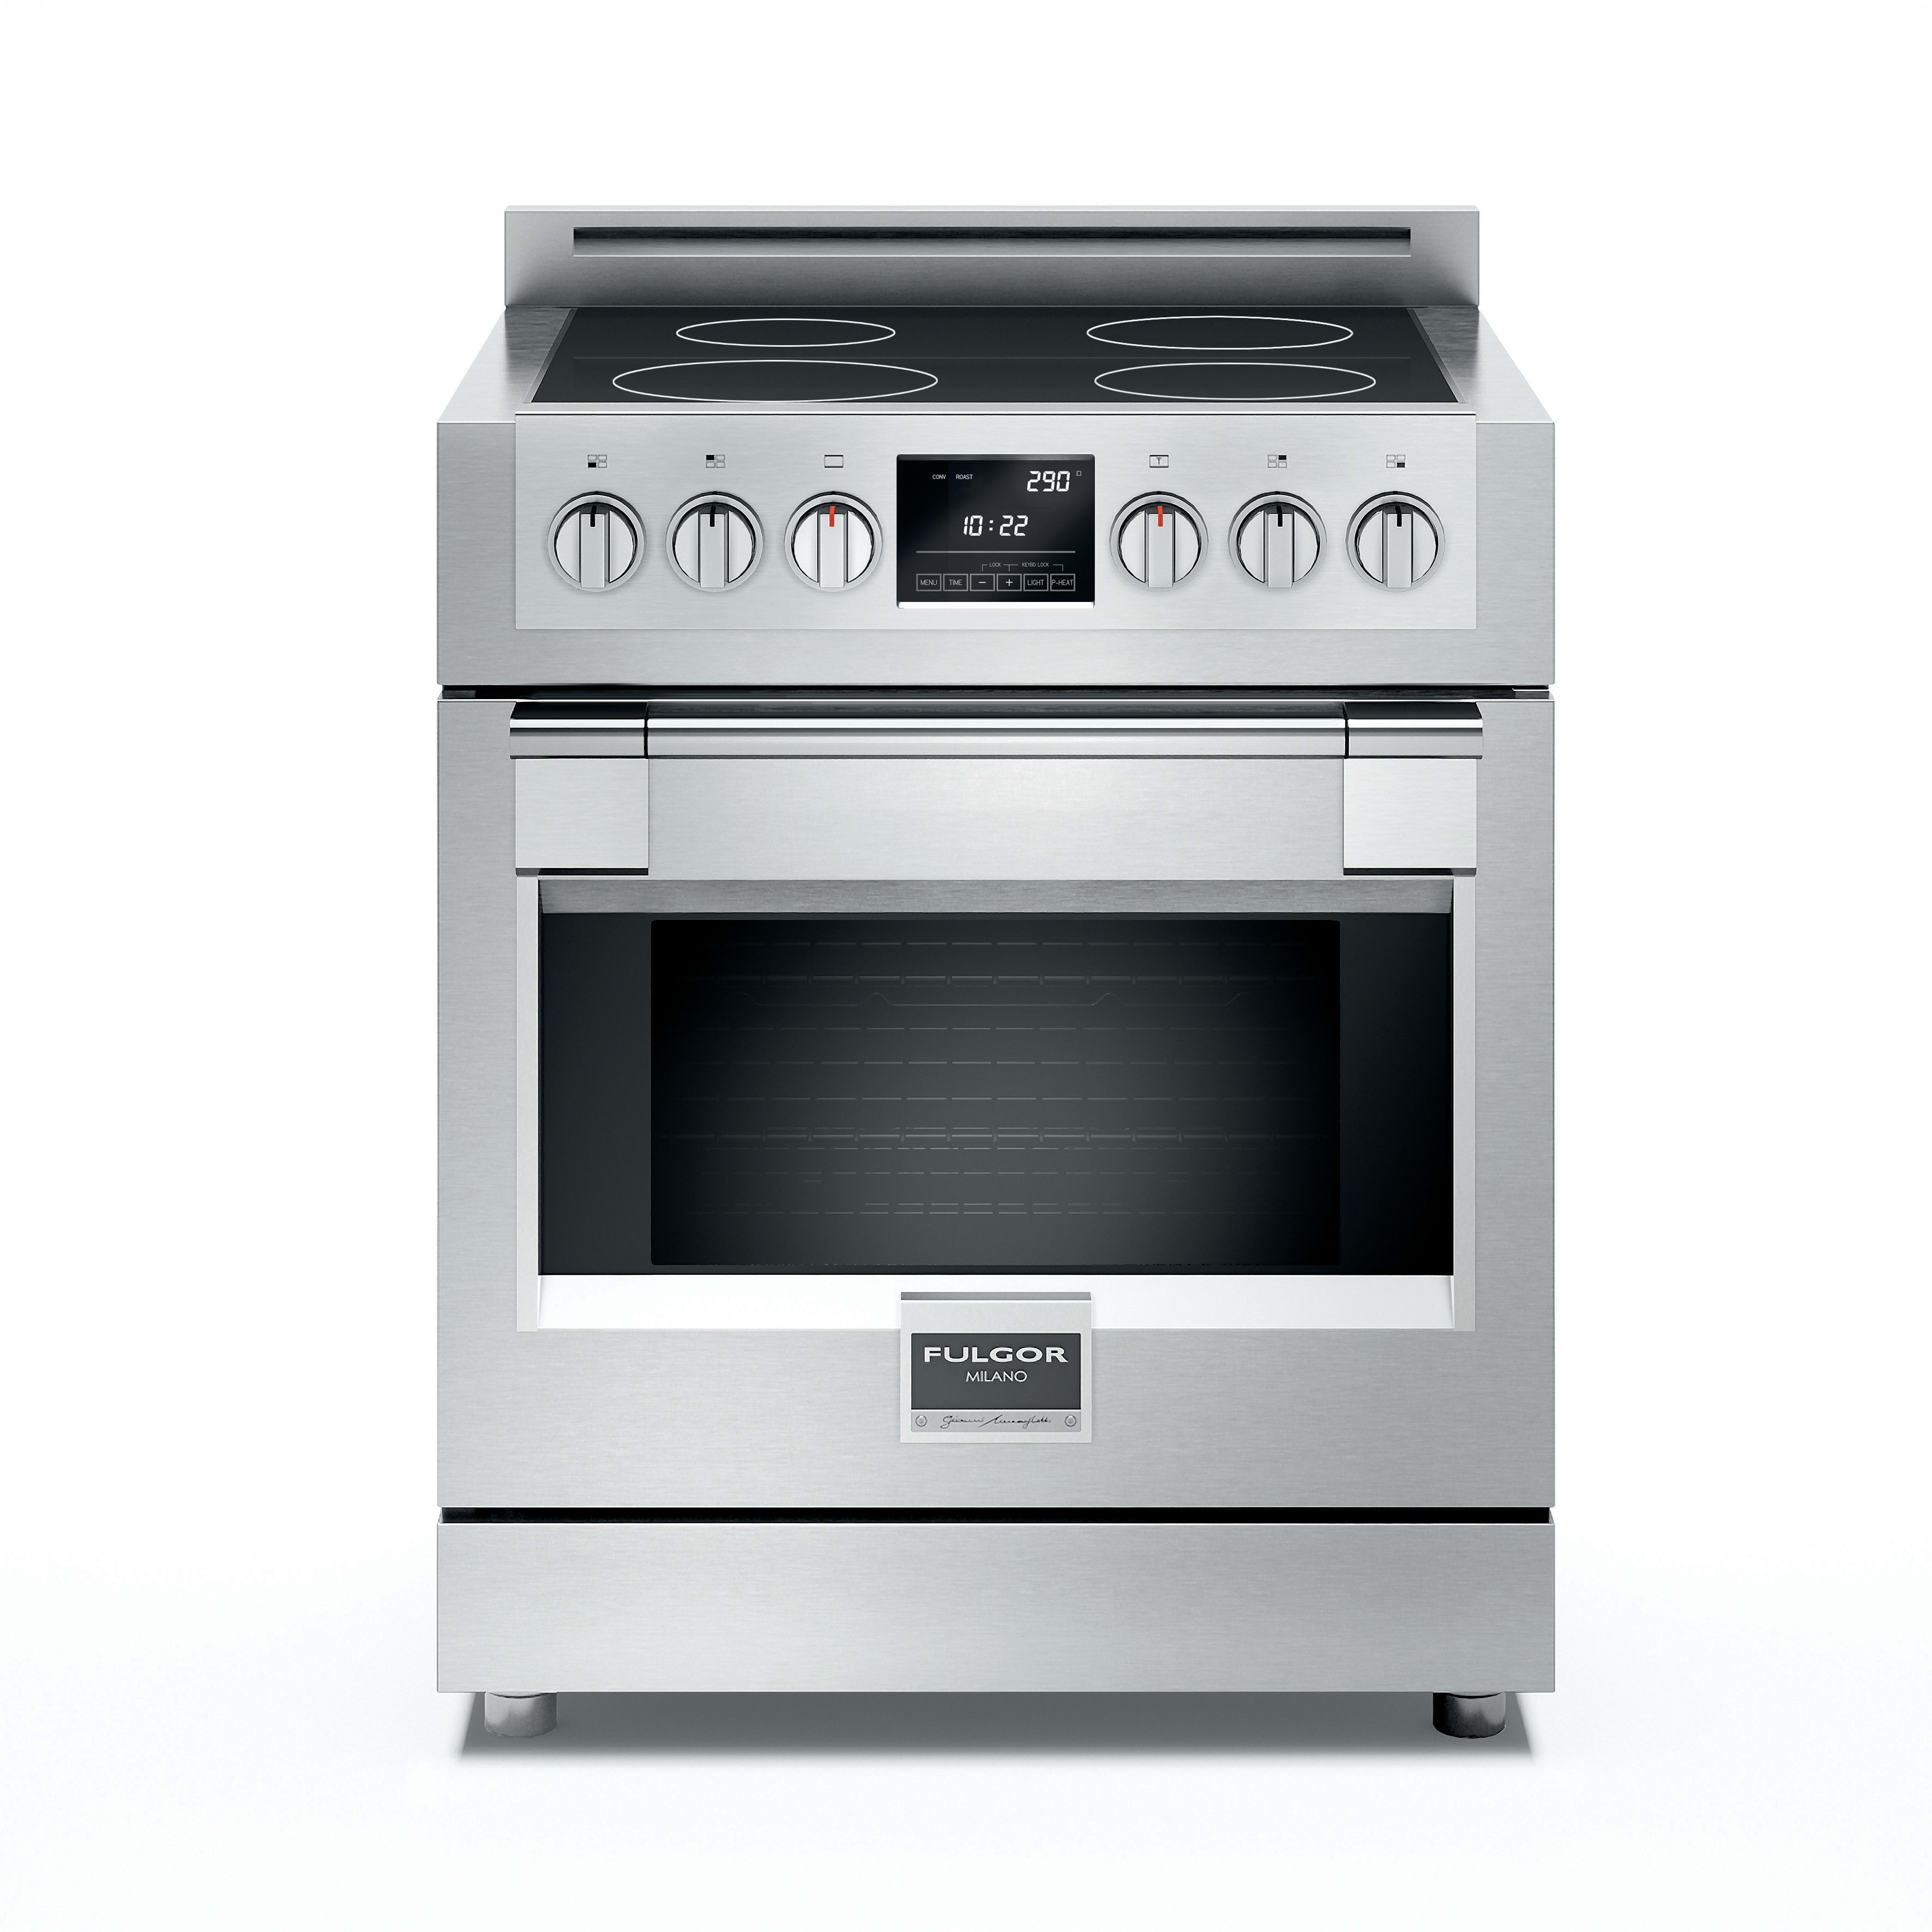 Fulgor Milano Sofia Series F6pir304s1 30 Freestanding Induction Range With 4 Cooking Zone